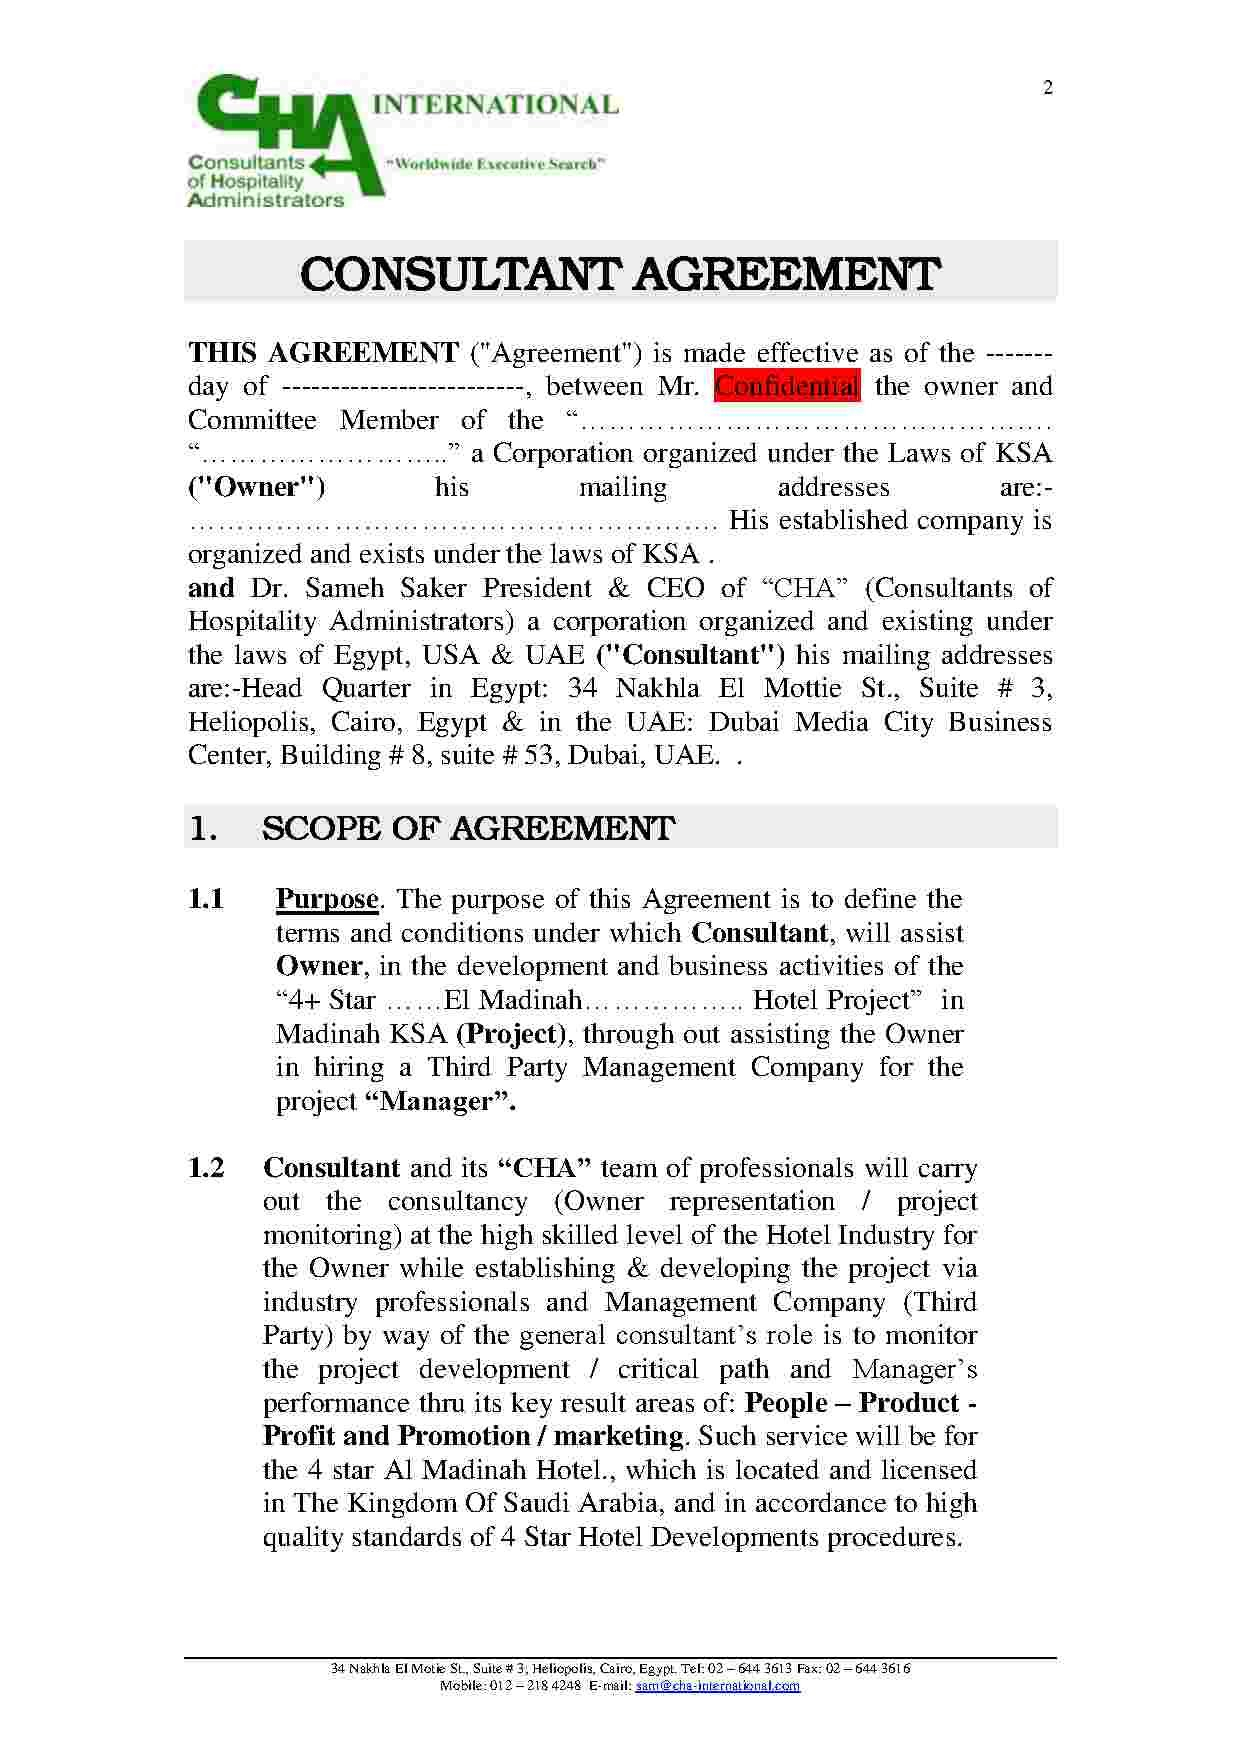 Download Marketing Consulting Agreement Style  Template For Free At Within Physician Consulting Agreement Template